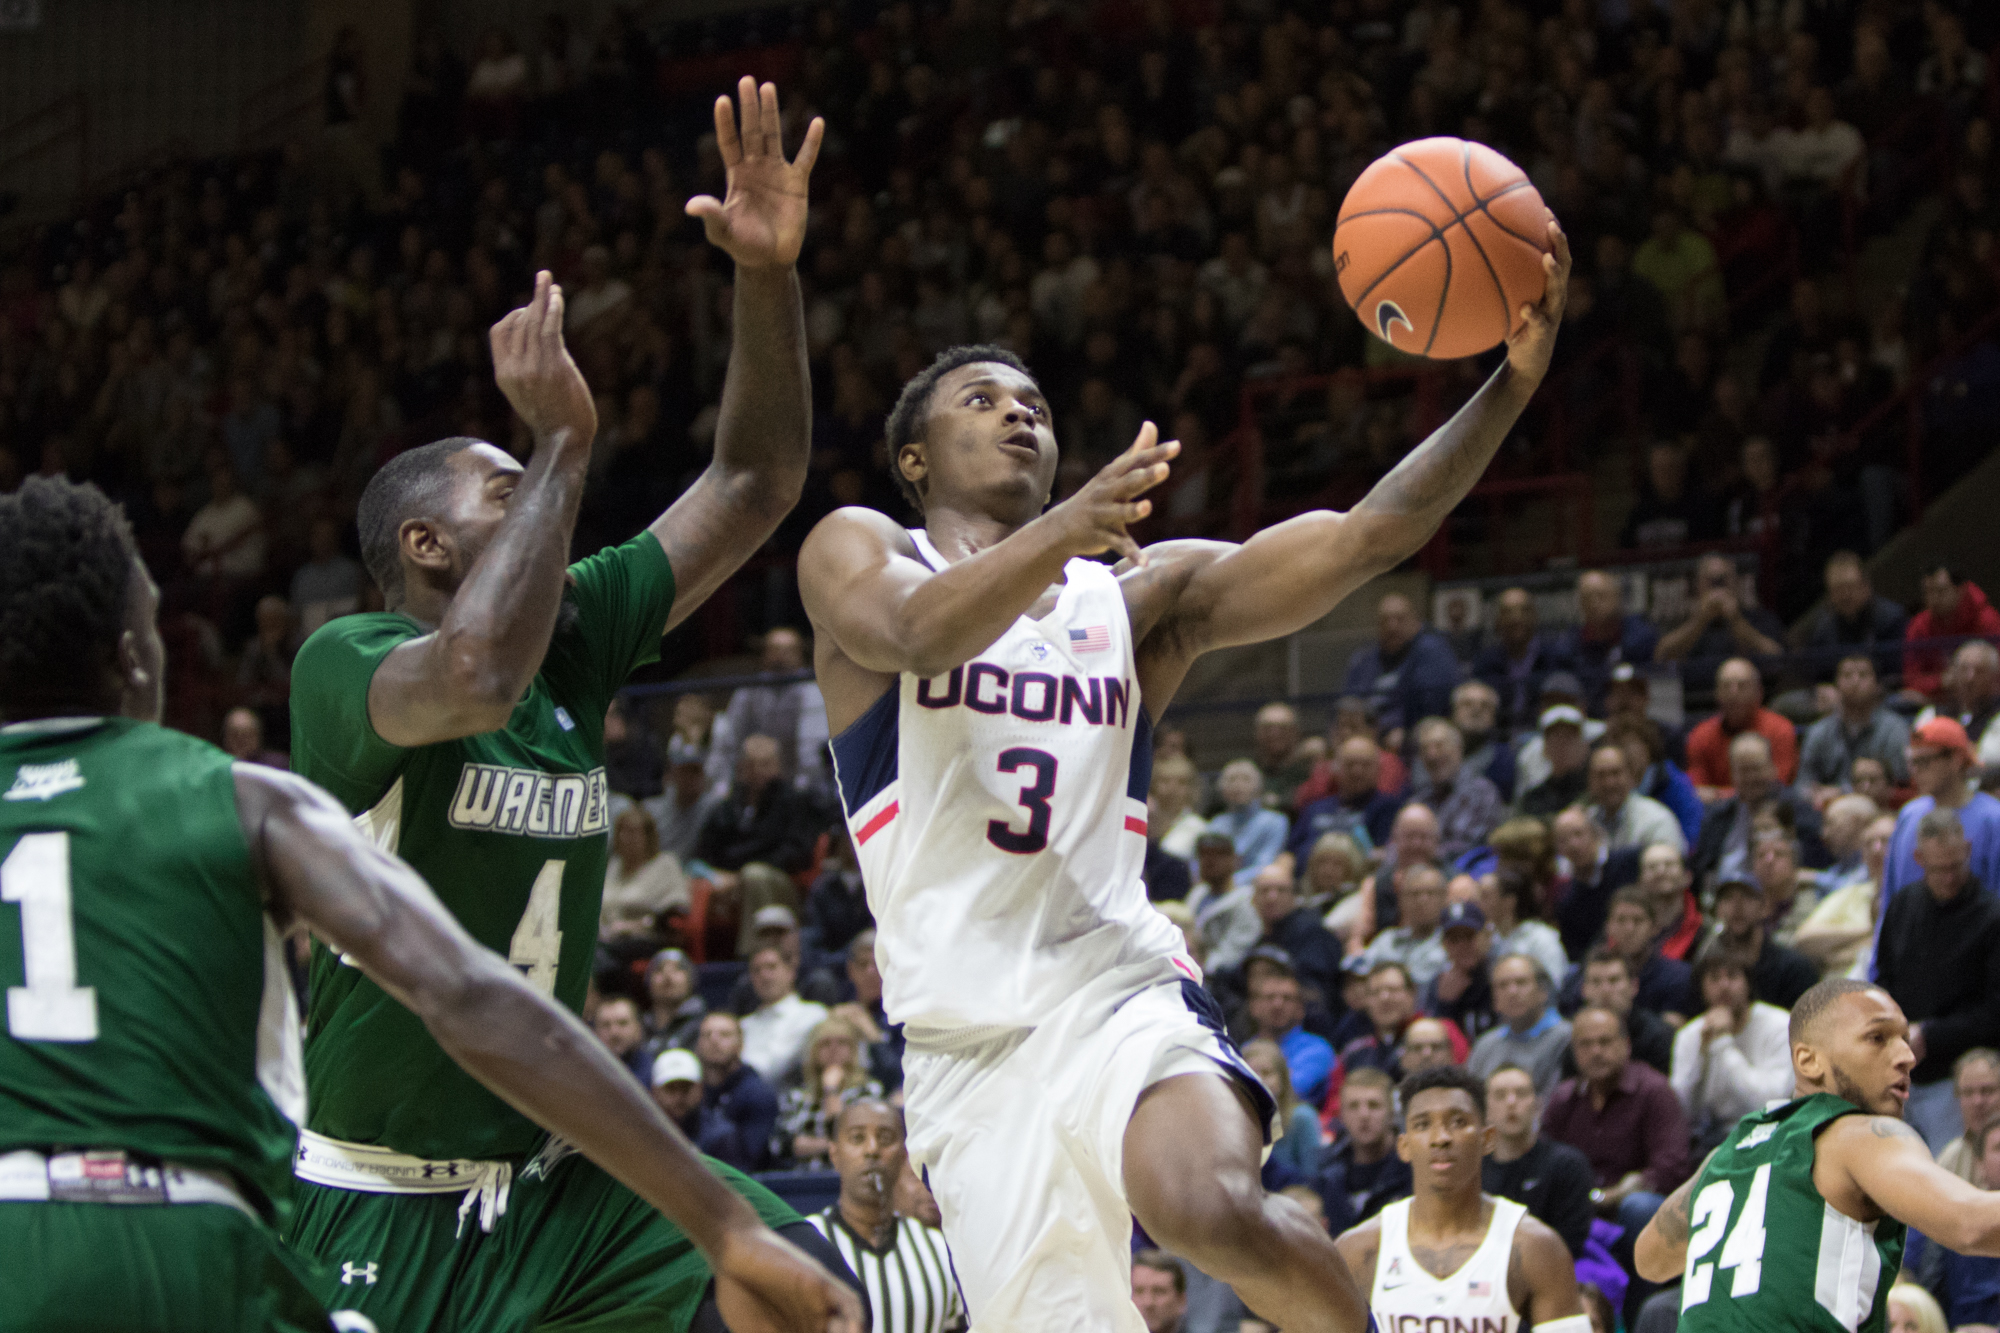 Freshman guard Alterique Gilbert goes up for a layup during the Huskies' 67-58 loss to Wagner on Friday, Nov. 11 at Gampel Pavilion. Gilbert scored 14 points in his first game as a Husky. (Jackson Haigis/The Daily Campus)